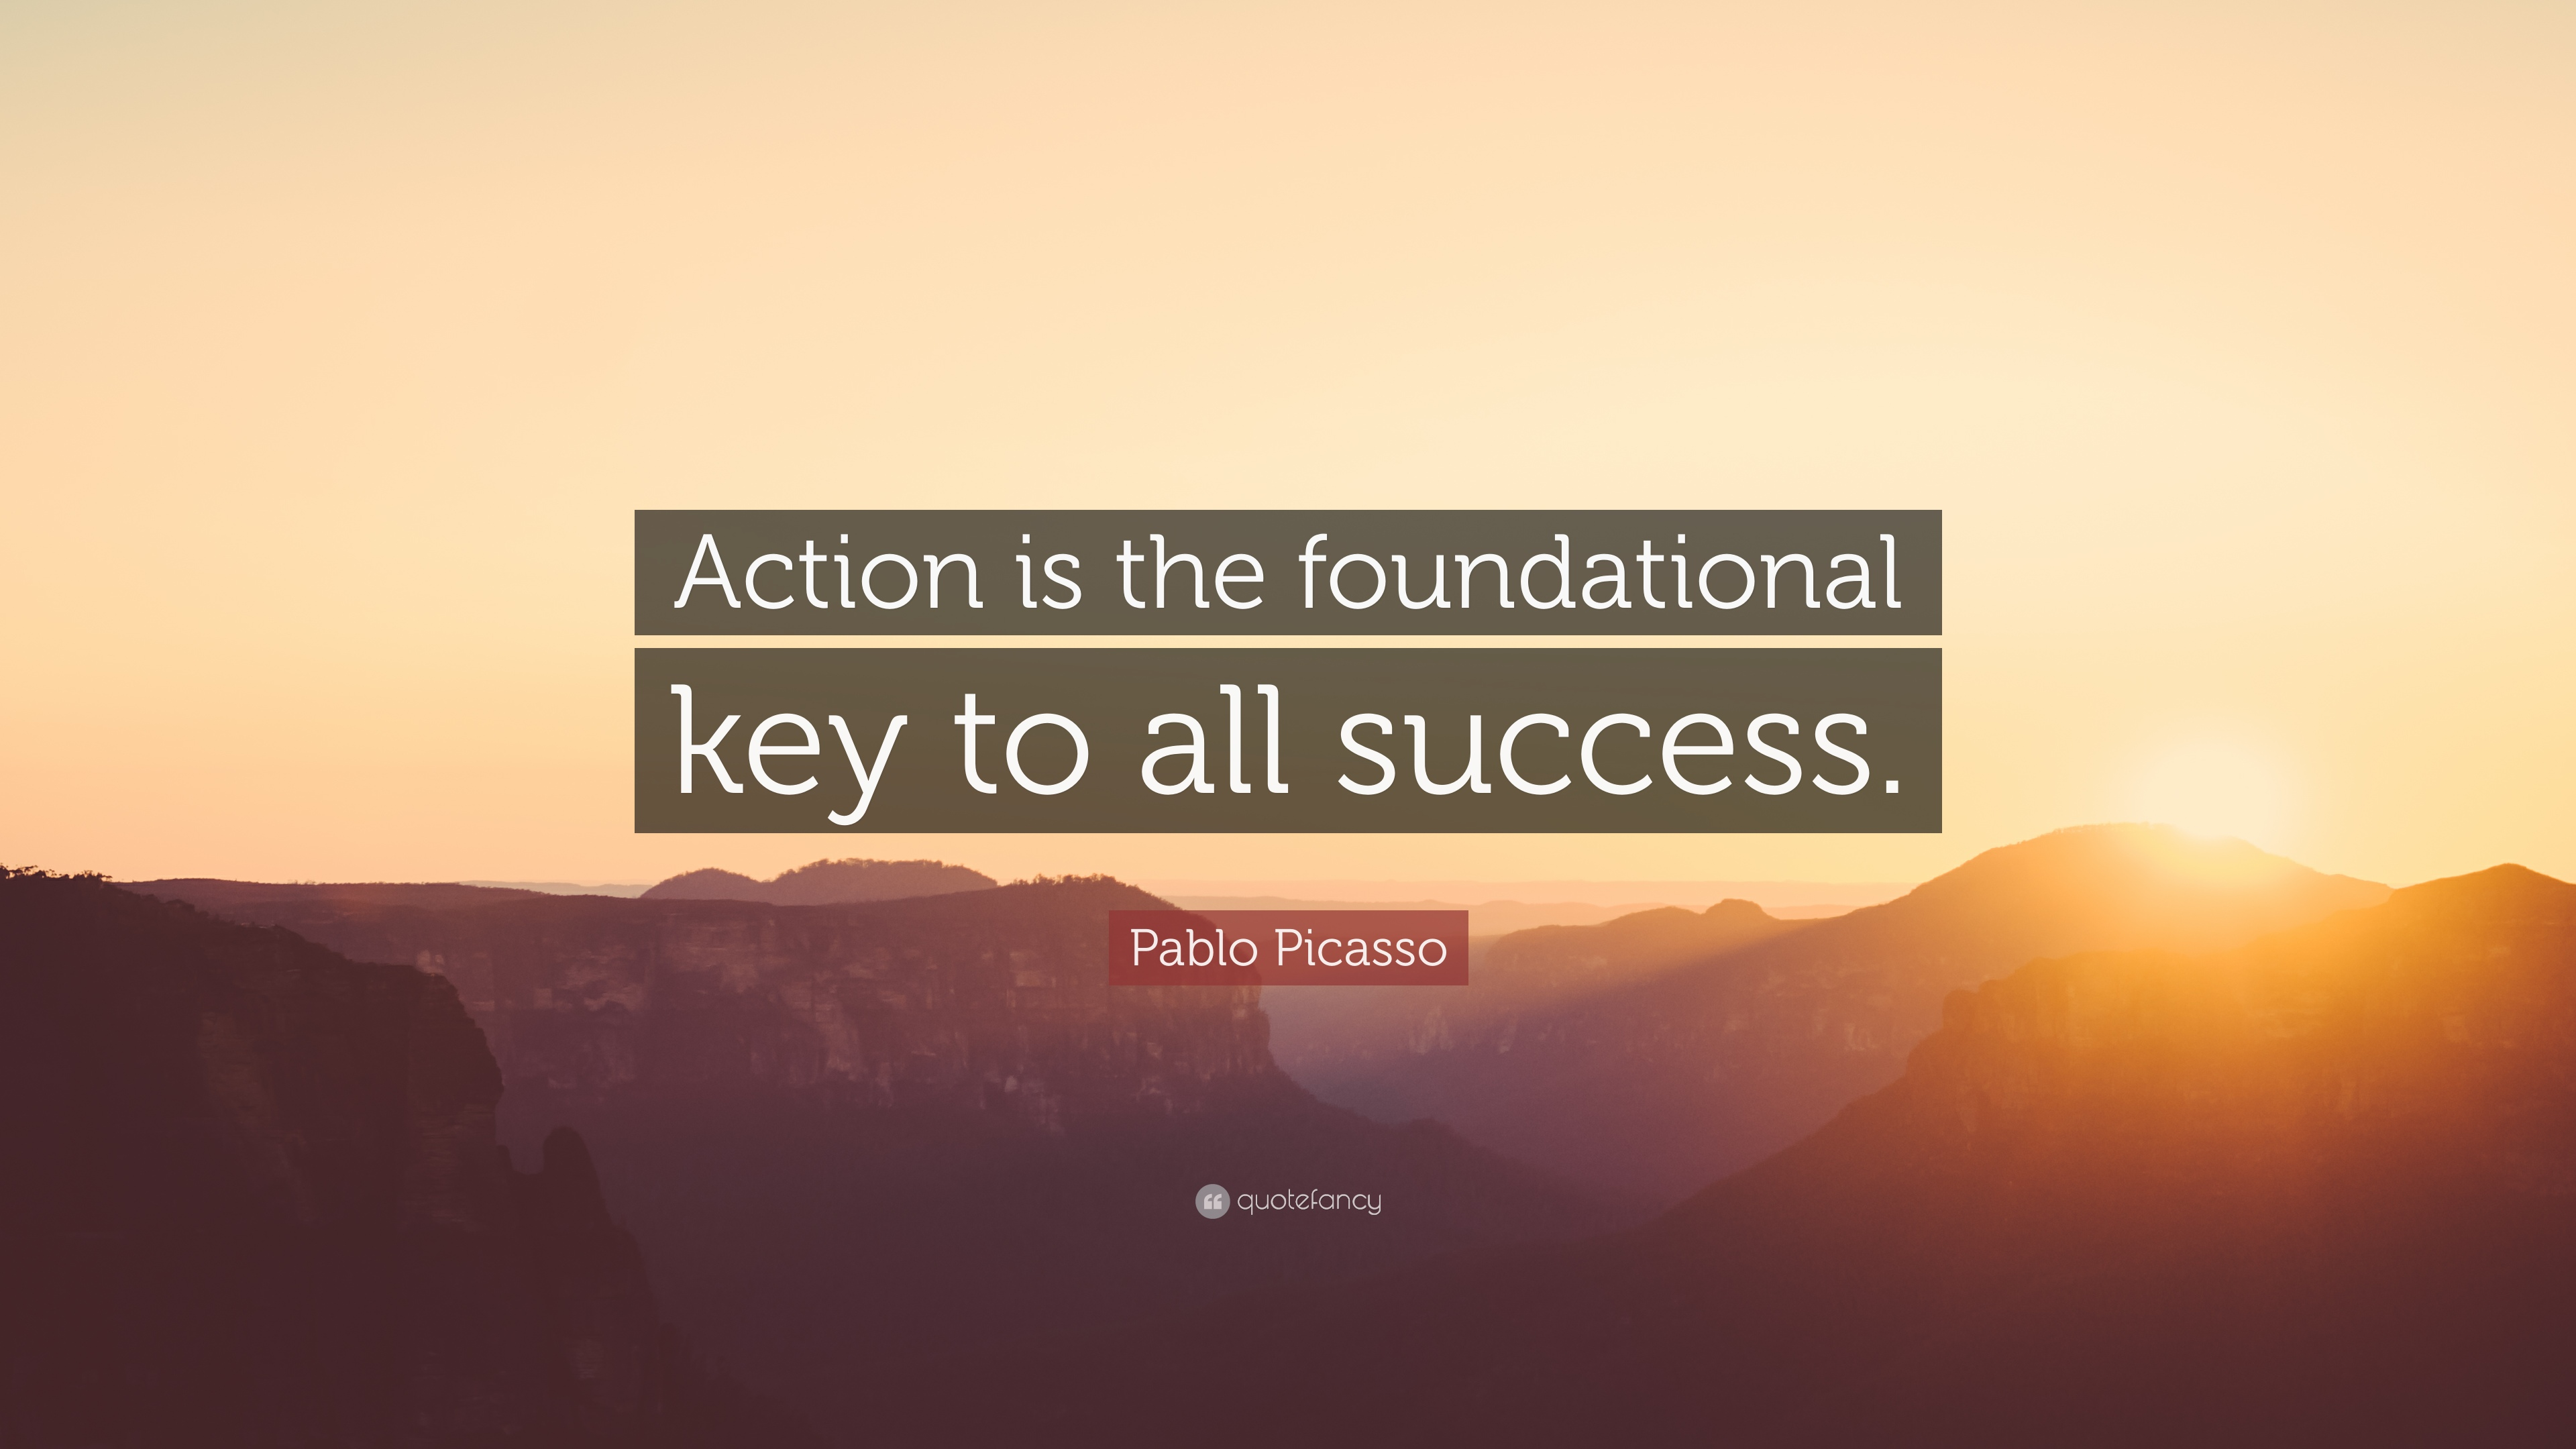 success quotes 52 quotefancy success quotes action is the foundational key to all success pablo